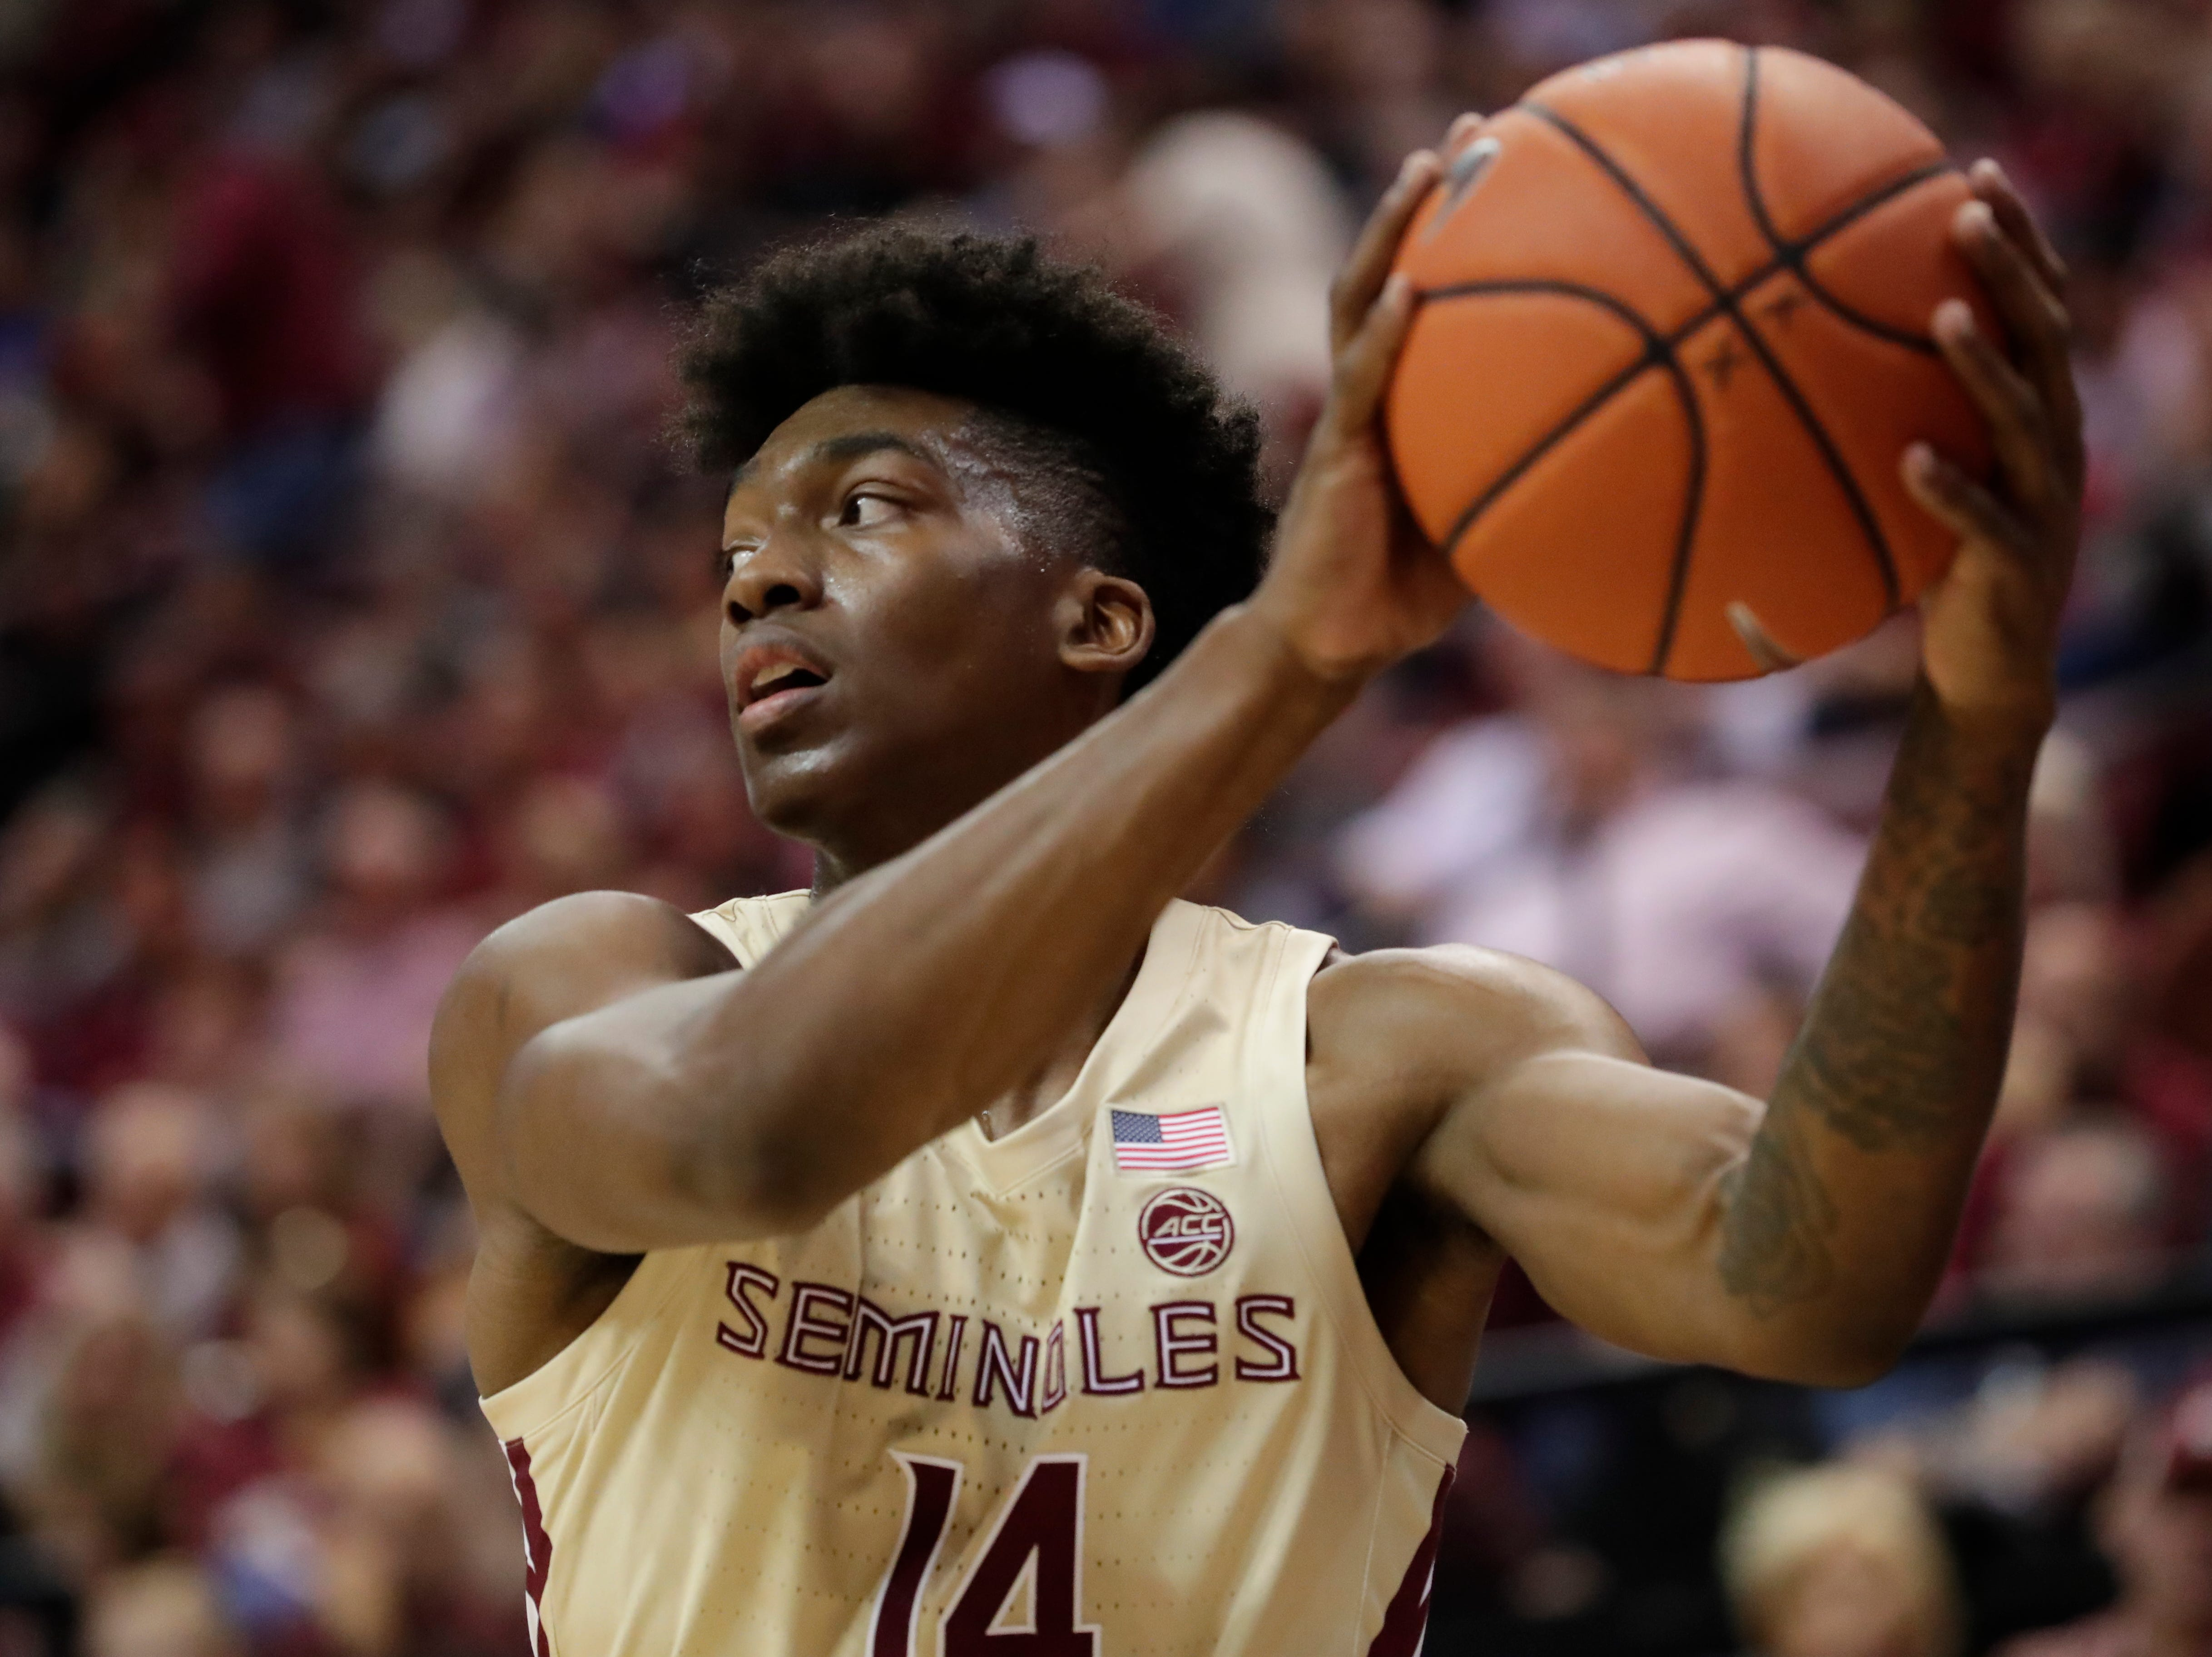 Florida State Seminoles guard Terance Mann (14) keeps the ball away from his defender while looking for an open teammate. Ranked 13 in the ACC, the Florida State Seminoles host the number 1 team, the Duke Blue Devils, at the Tucker Civic Center, Saturday, Jan. 12, 2019.